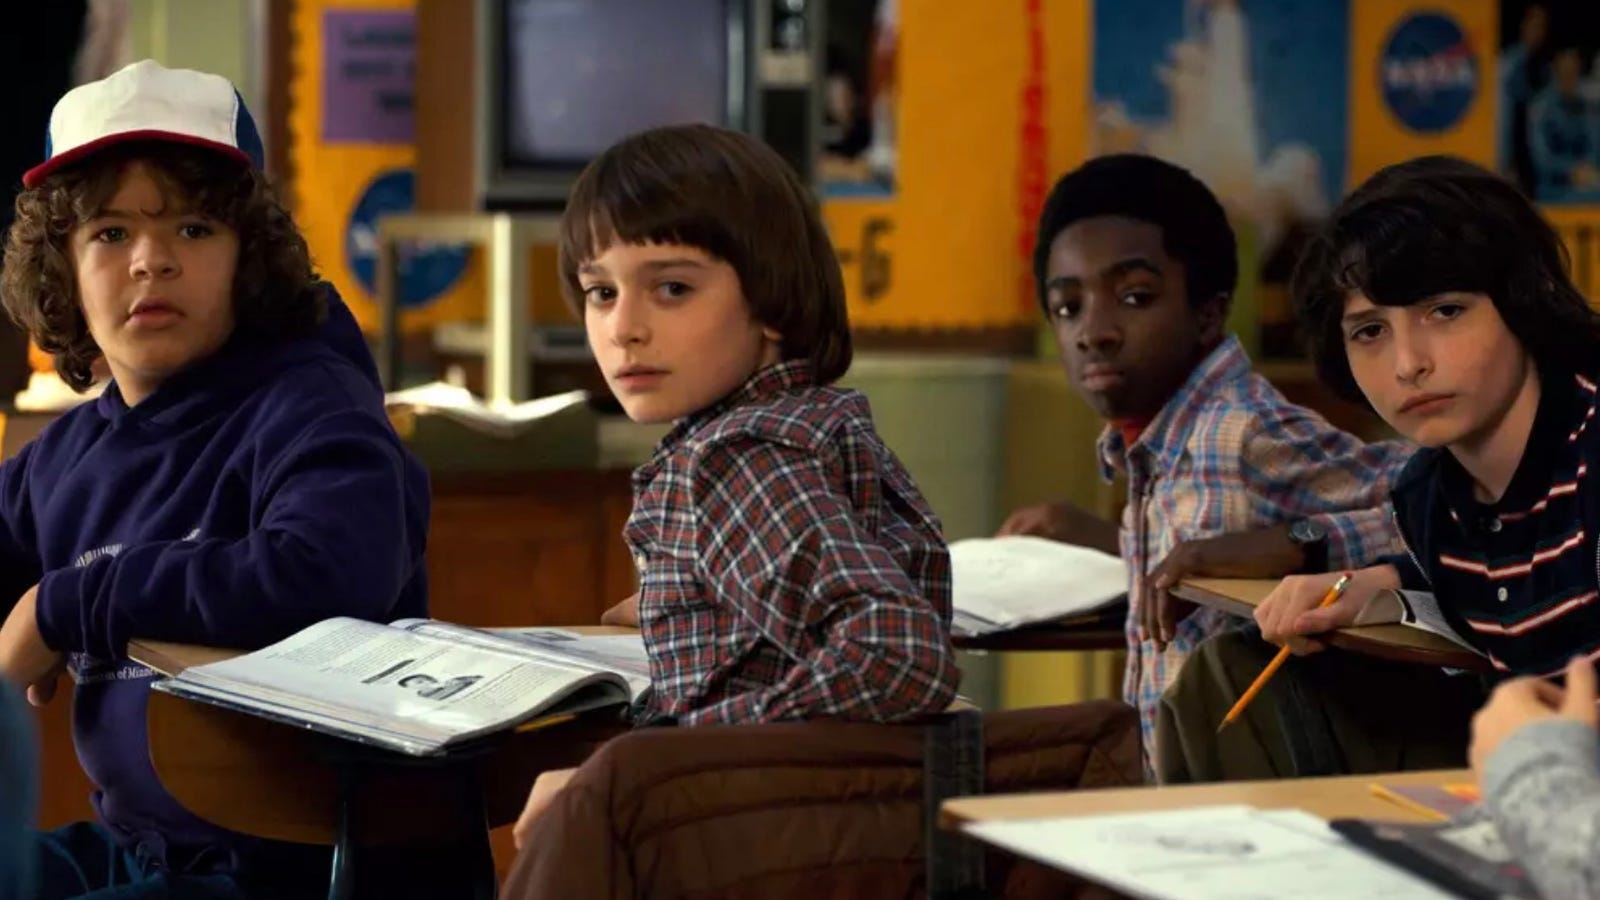 The Episode Titles for Stranger Things Season 3 Are Here